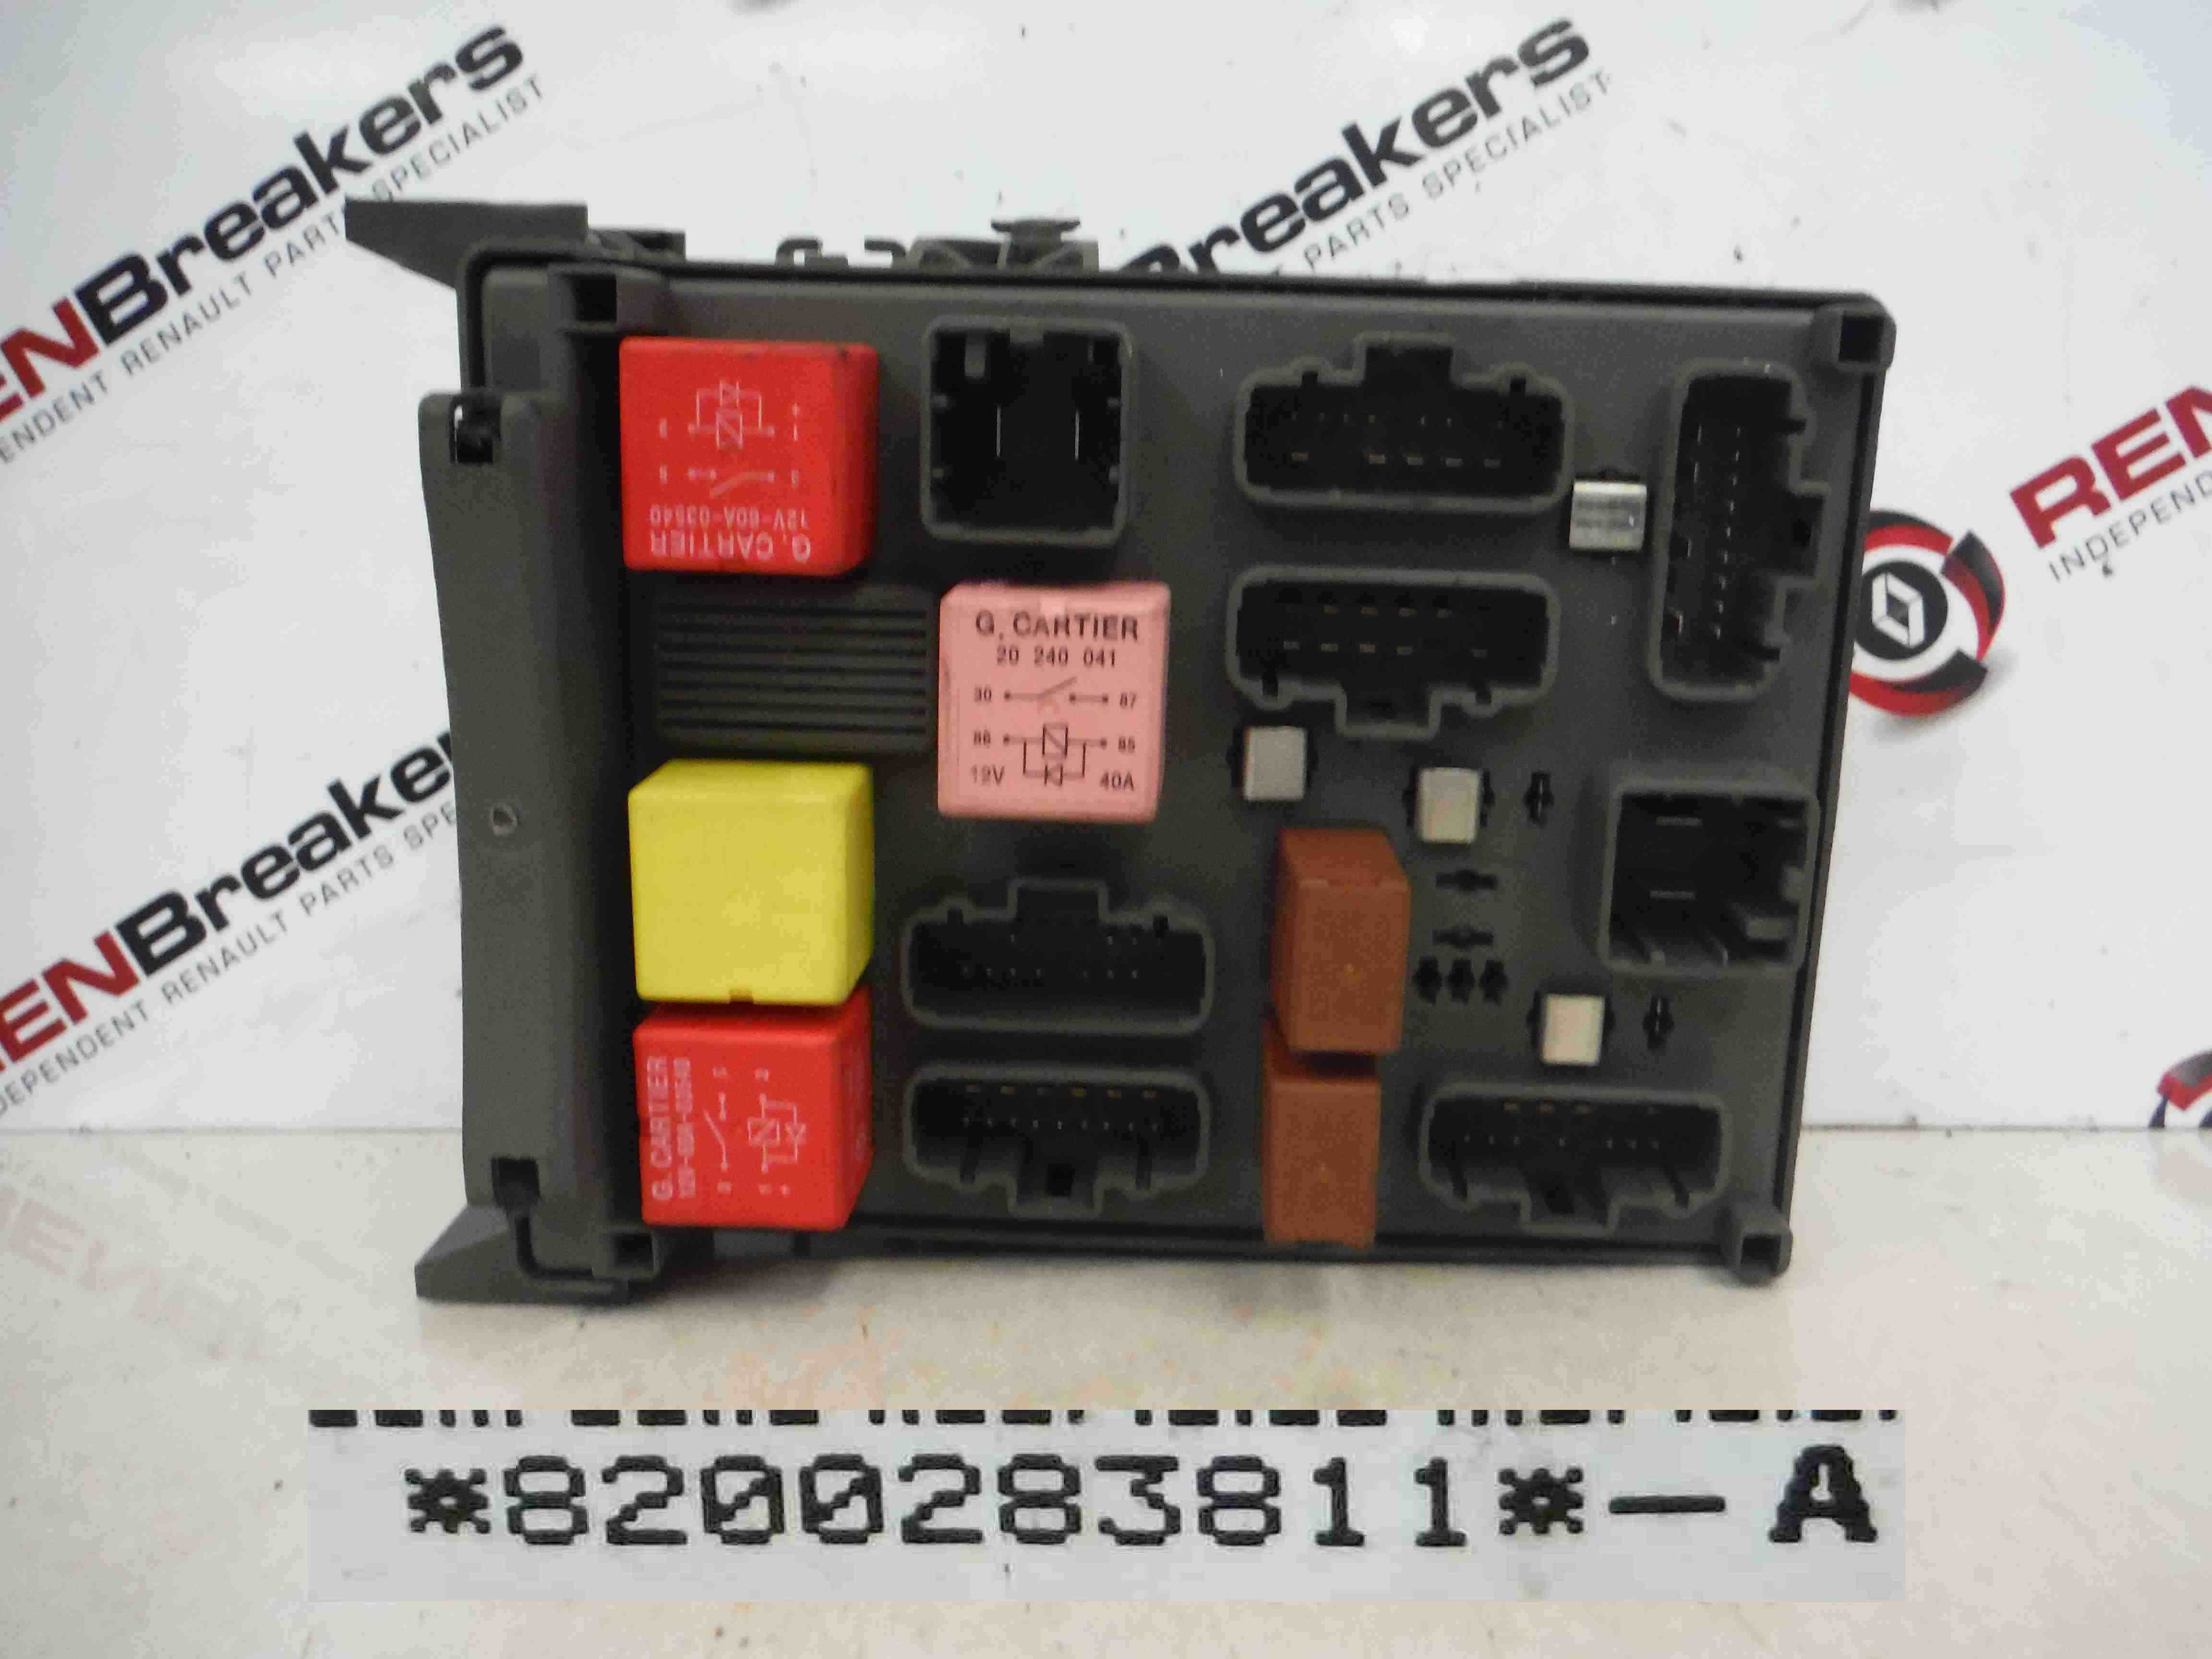 renault espace 2003 2013 underdash fuse box relay board computer click here for a high resolution photo